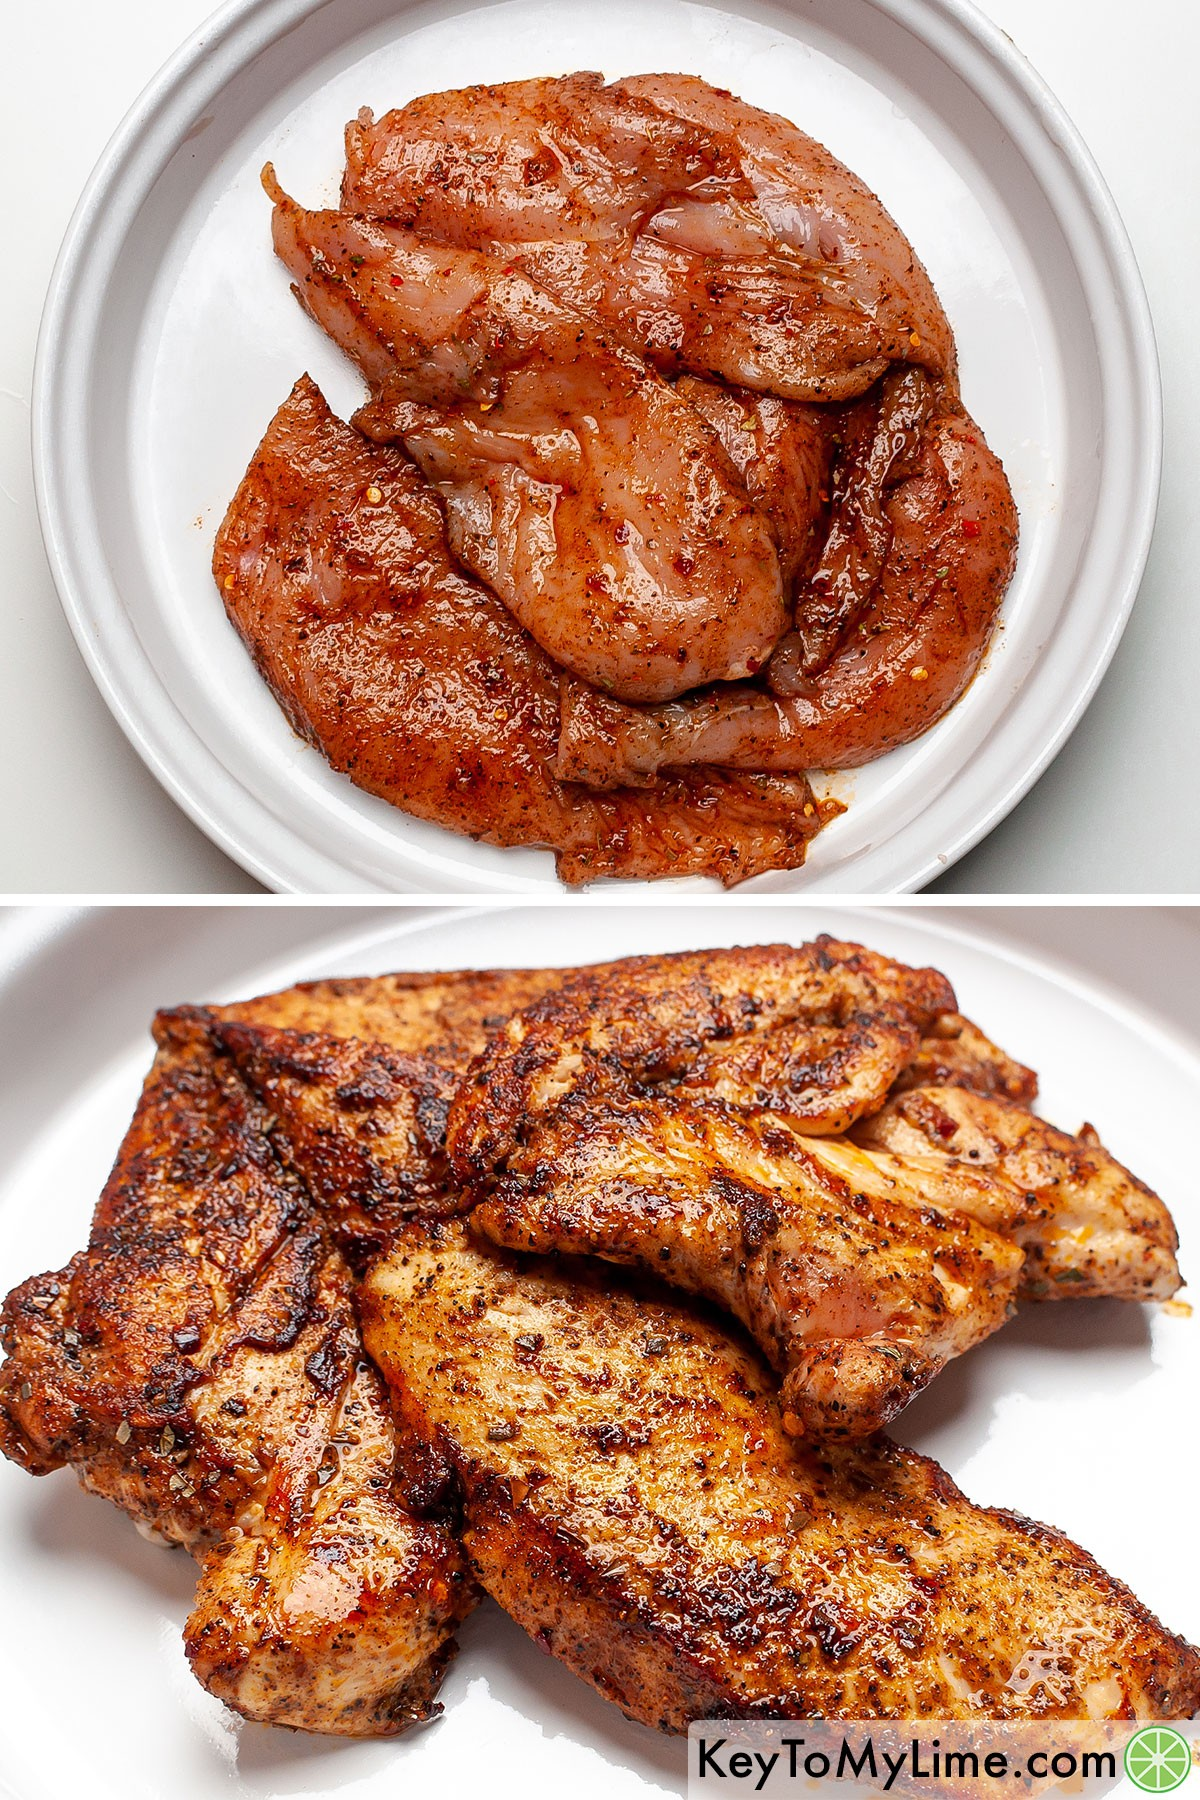 Chicken breast in taco seasoning before and after cooking.